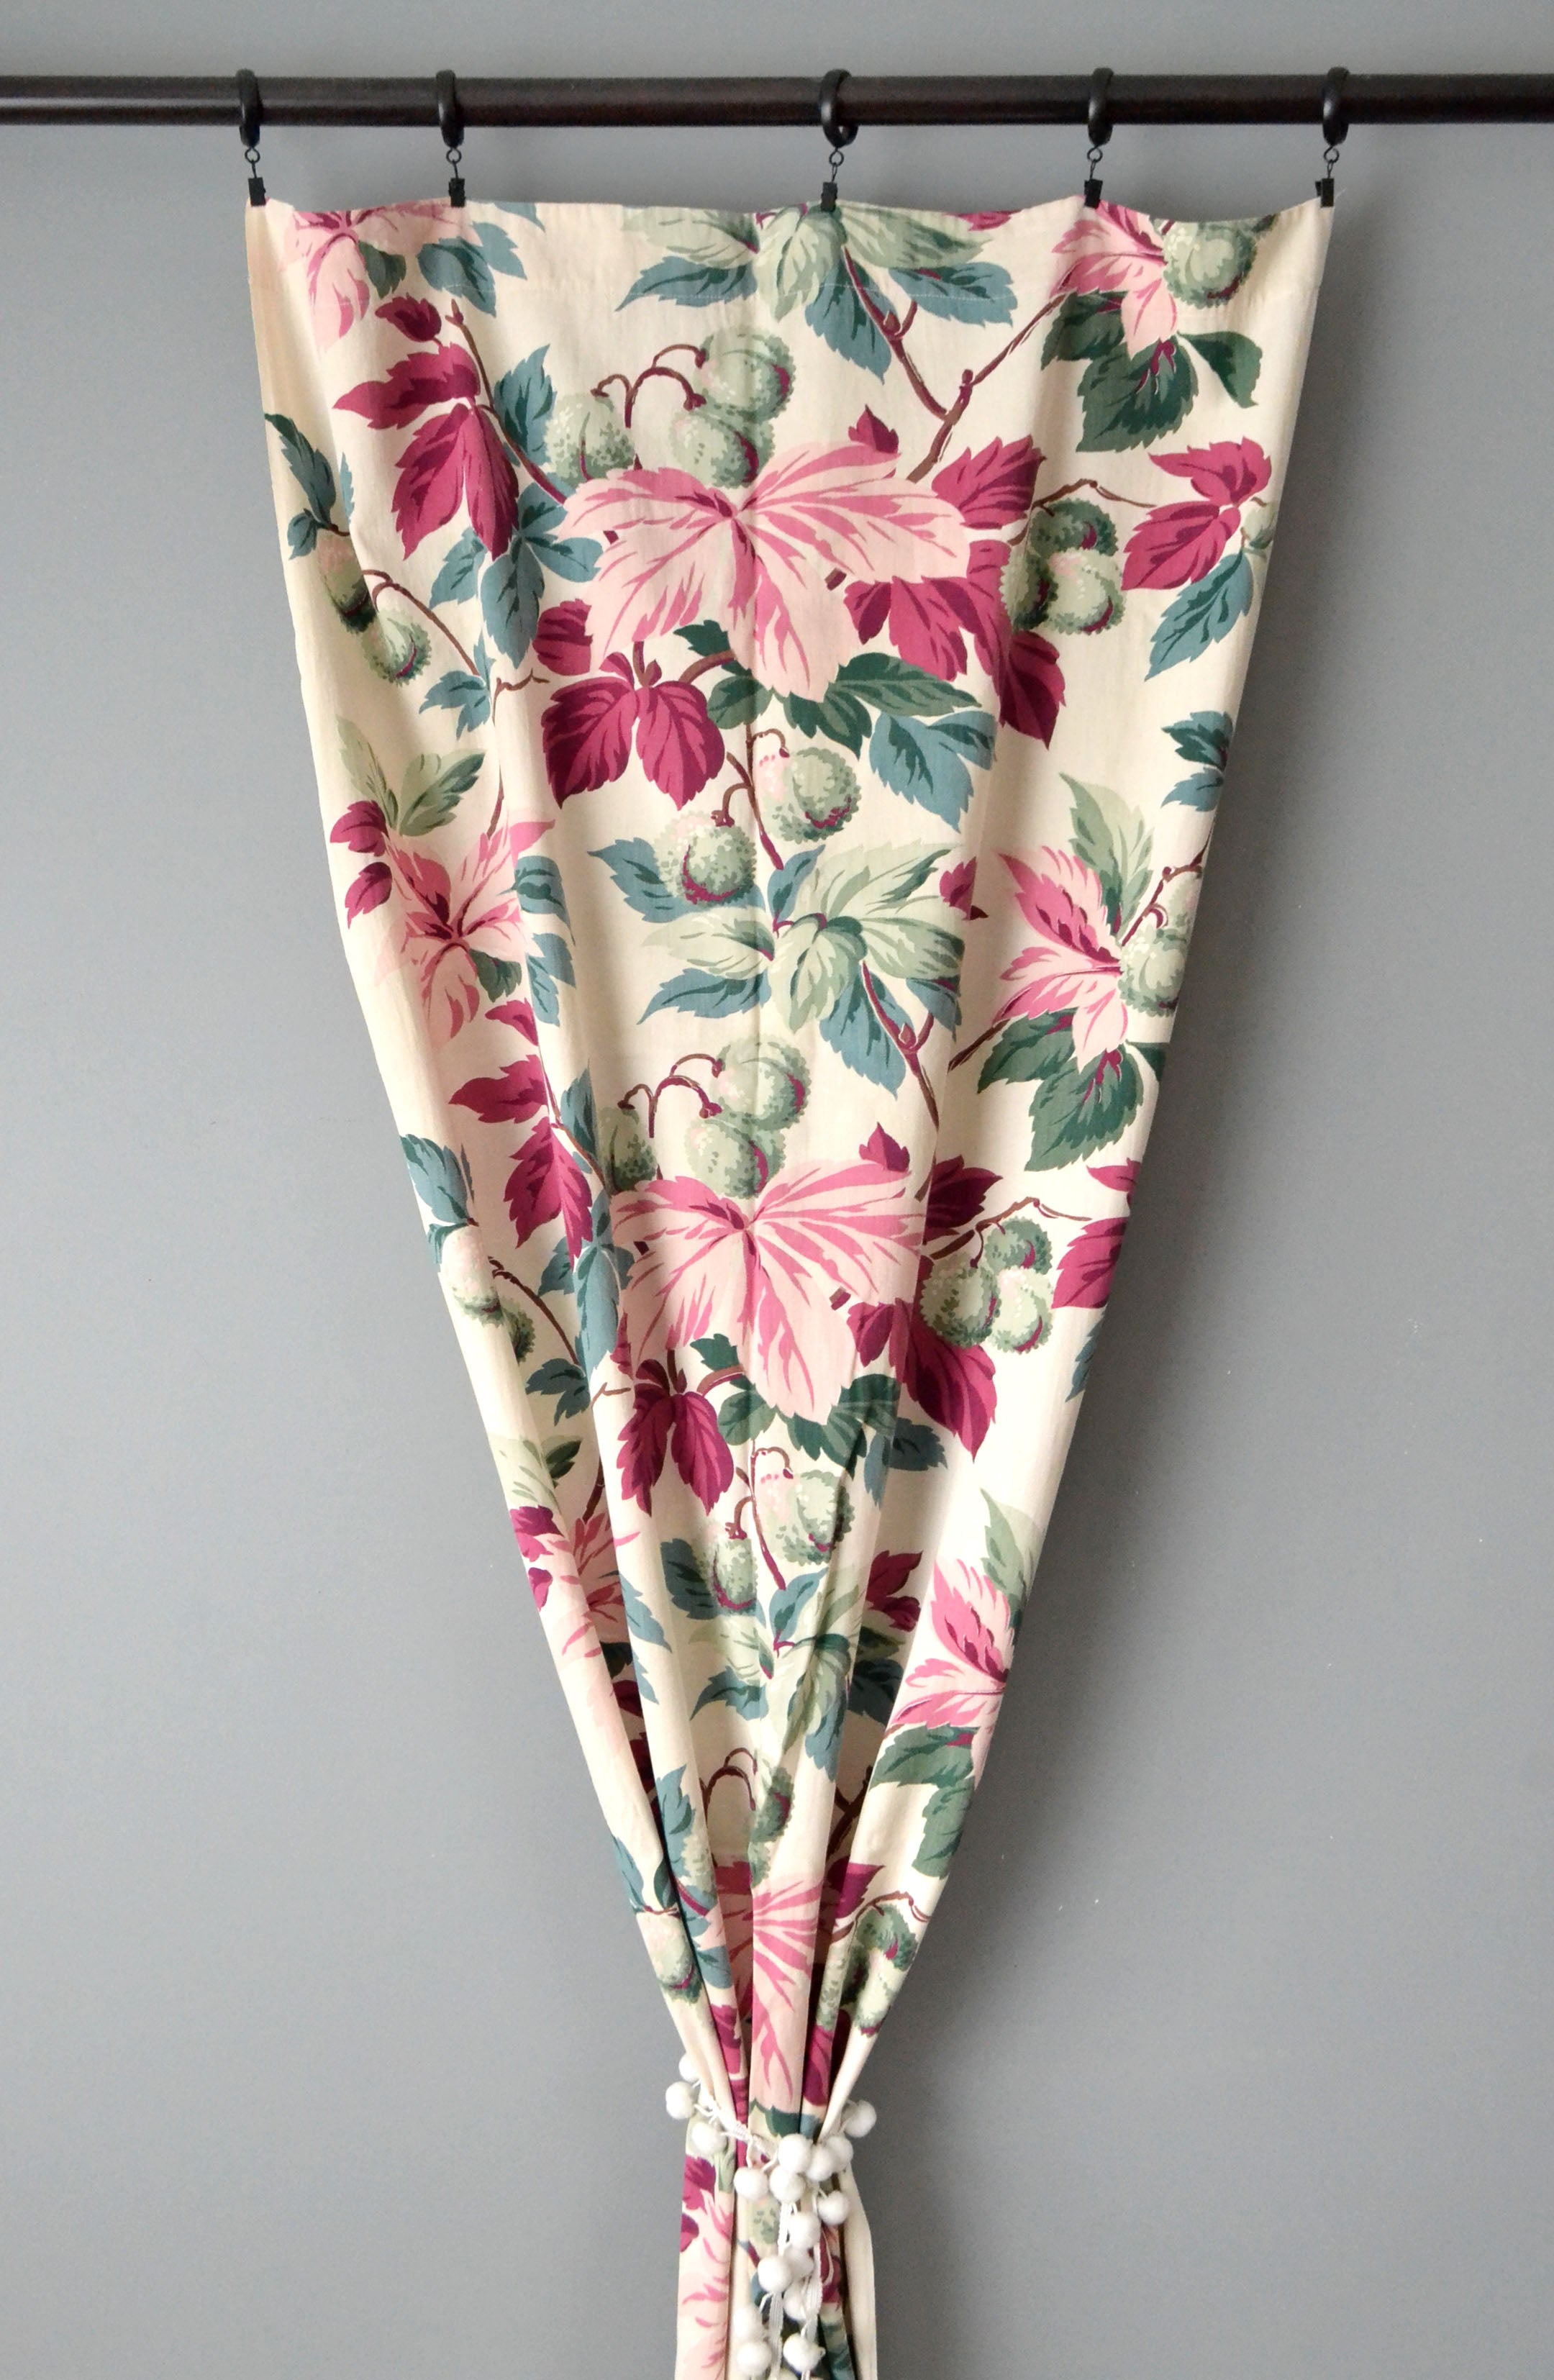 Vintage 40s Floral Cotton Curtains by Yuba Mercantile